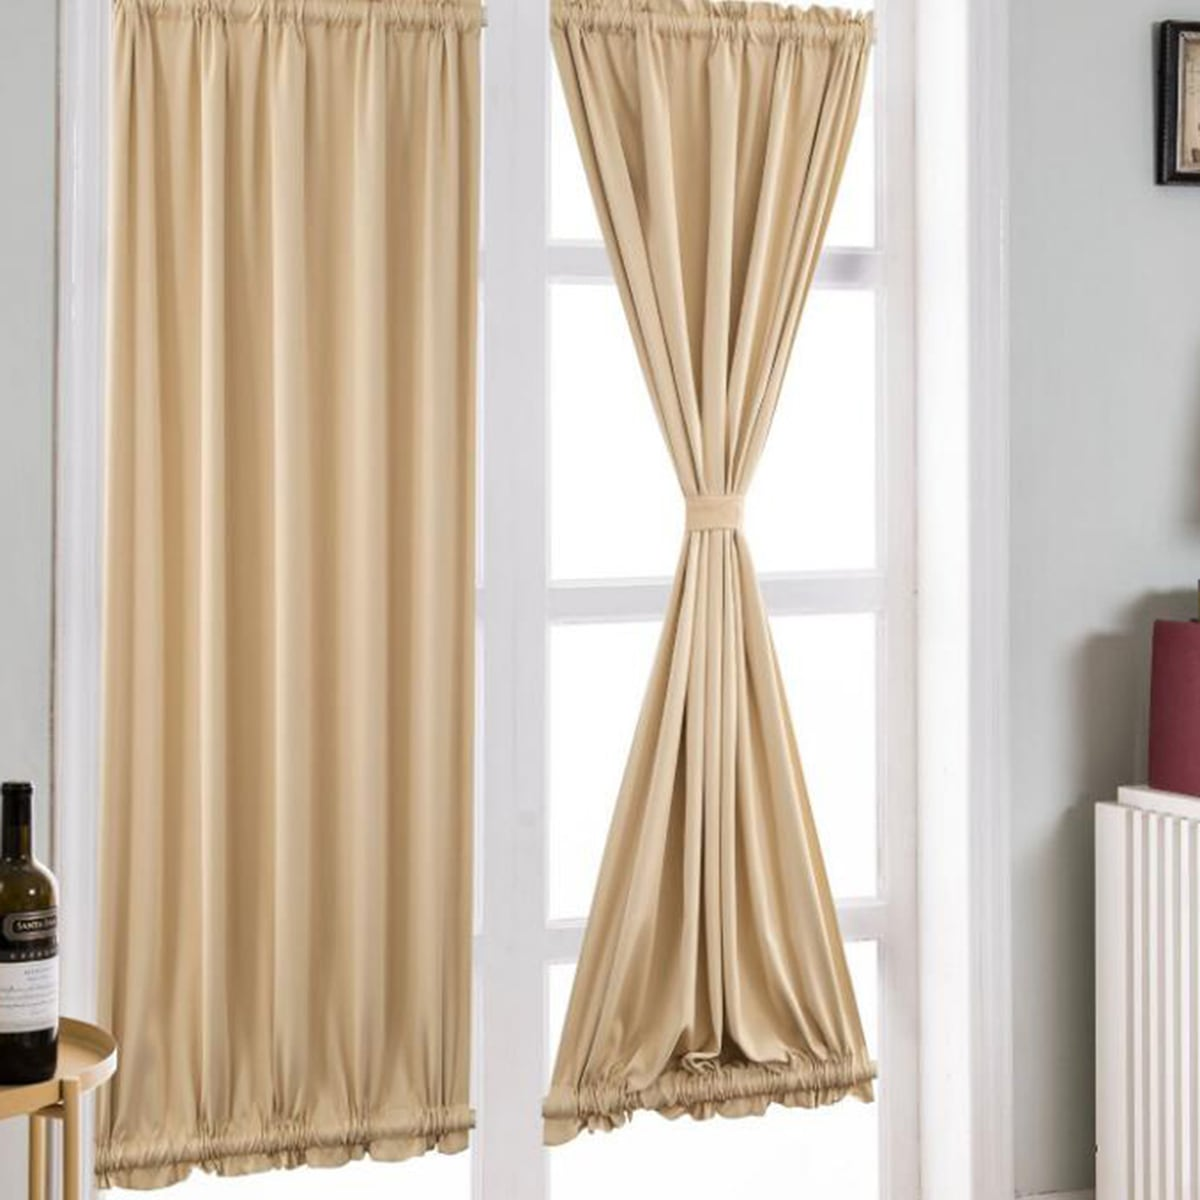 1 st Solid Sheer Curtain